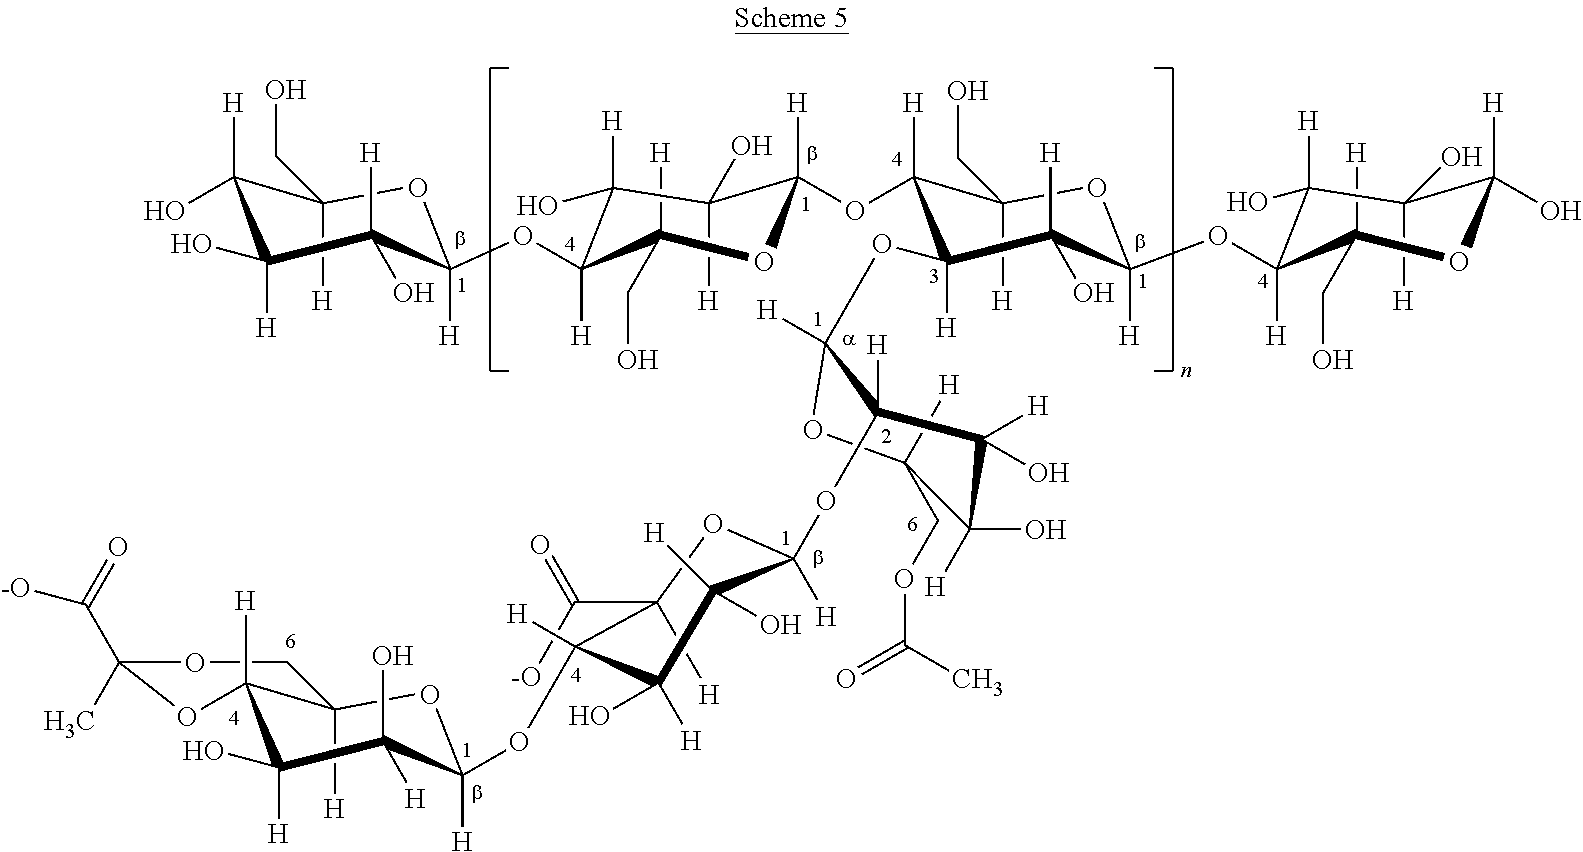 acetylation of α d glucopyranose Methyl β-d-glucopyranoside home  products  glycobiology product  carbohydrates  1,3,4,6-tetra-o-acetyl-2-azido-2-deoxy-α-d-glucopyranose 1,3,4,6-tetra-o-acetyl-2-azido-2-deoxy-α-d-glucopyranose.